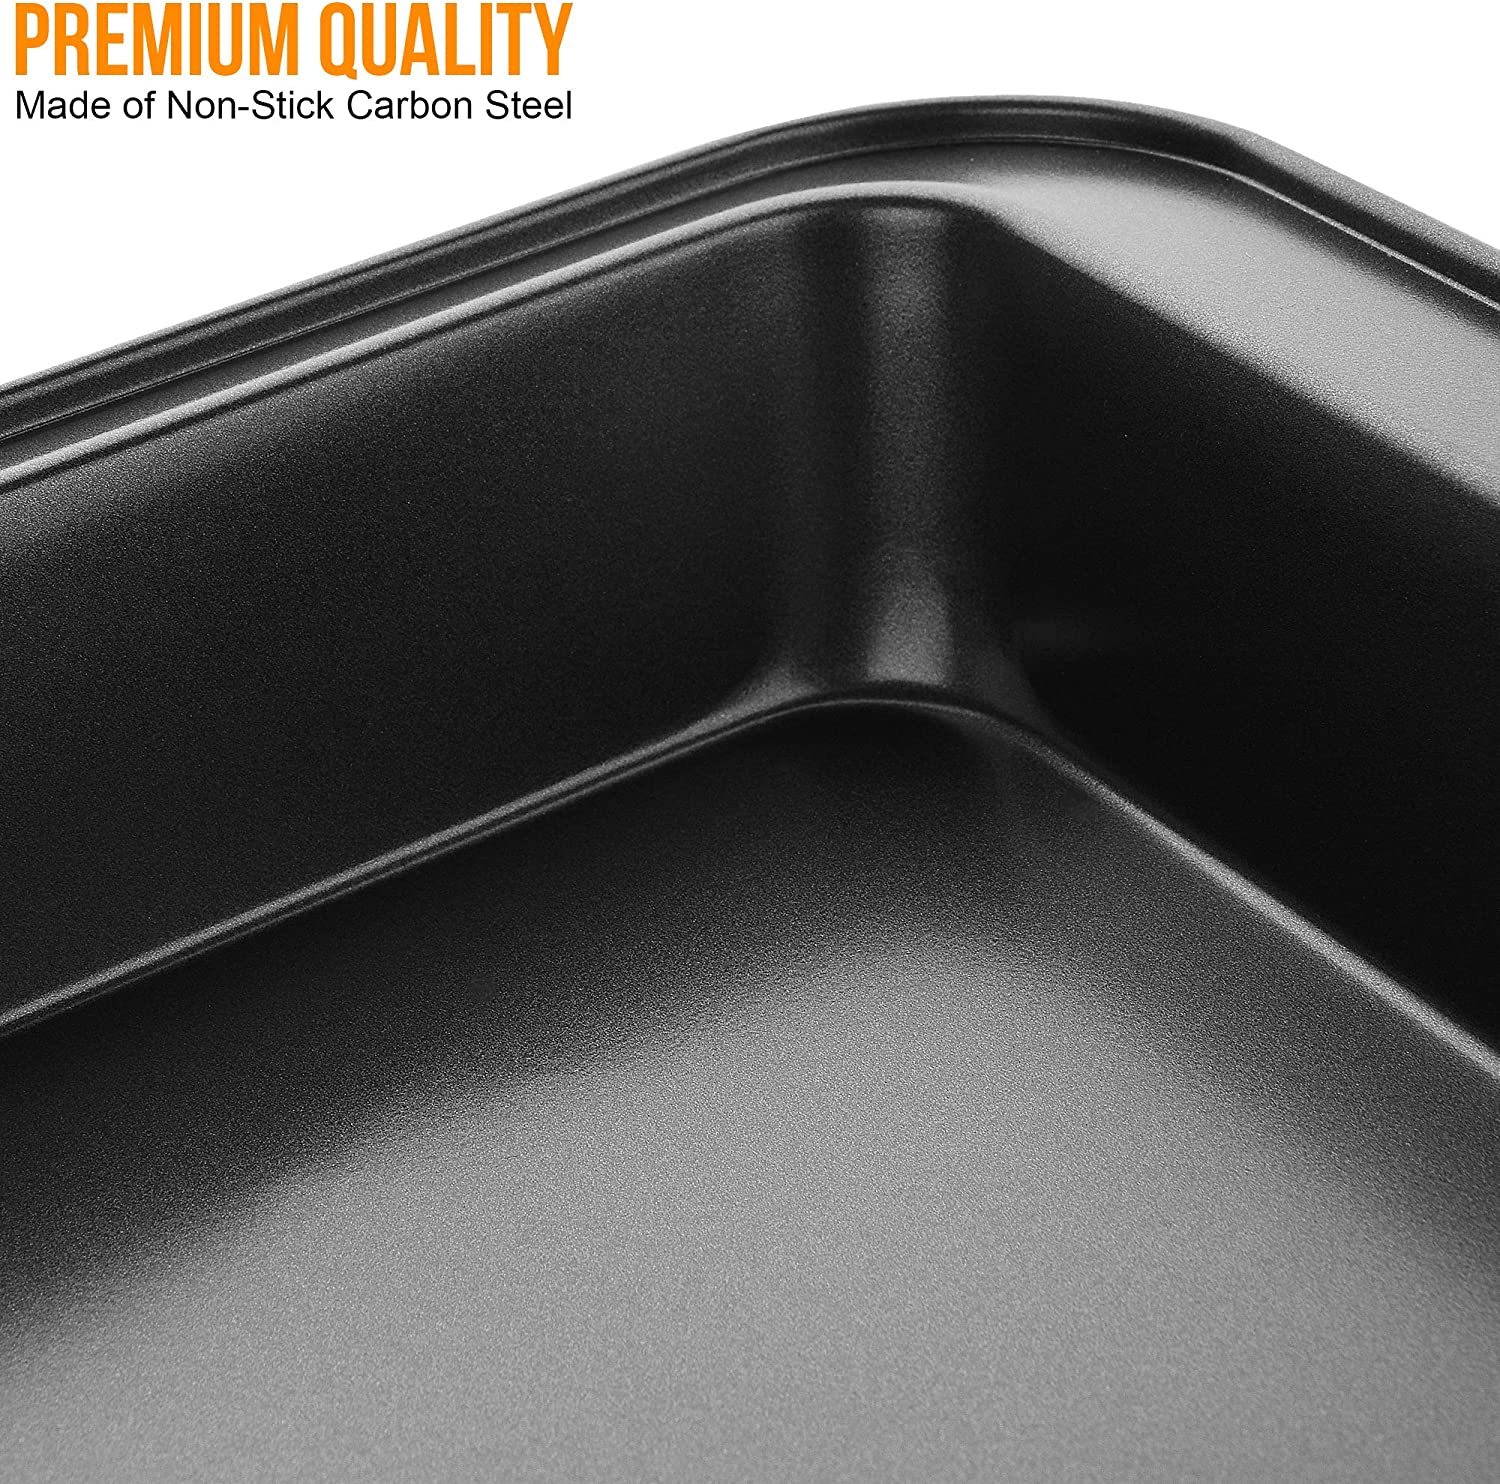 EVELYN LIVING Roasting Tray Non Stick Set of 3 Baking Oven Trays Tins Rectangular Bakeware Carbon Steel Material Kitchen Cooking Home